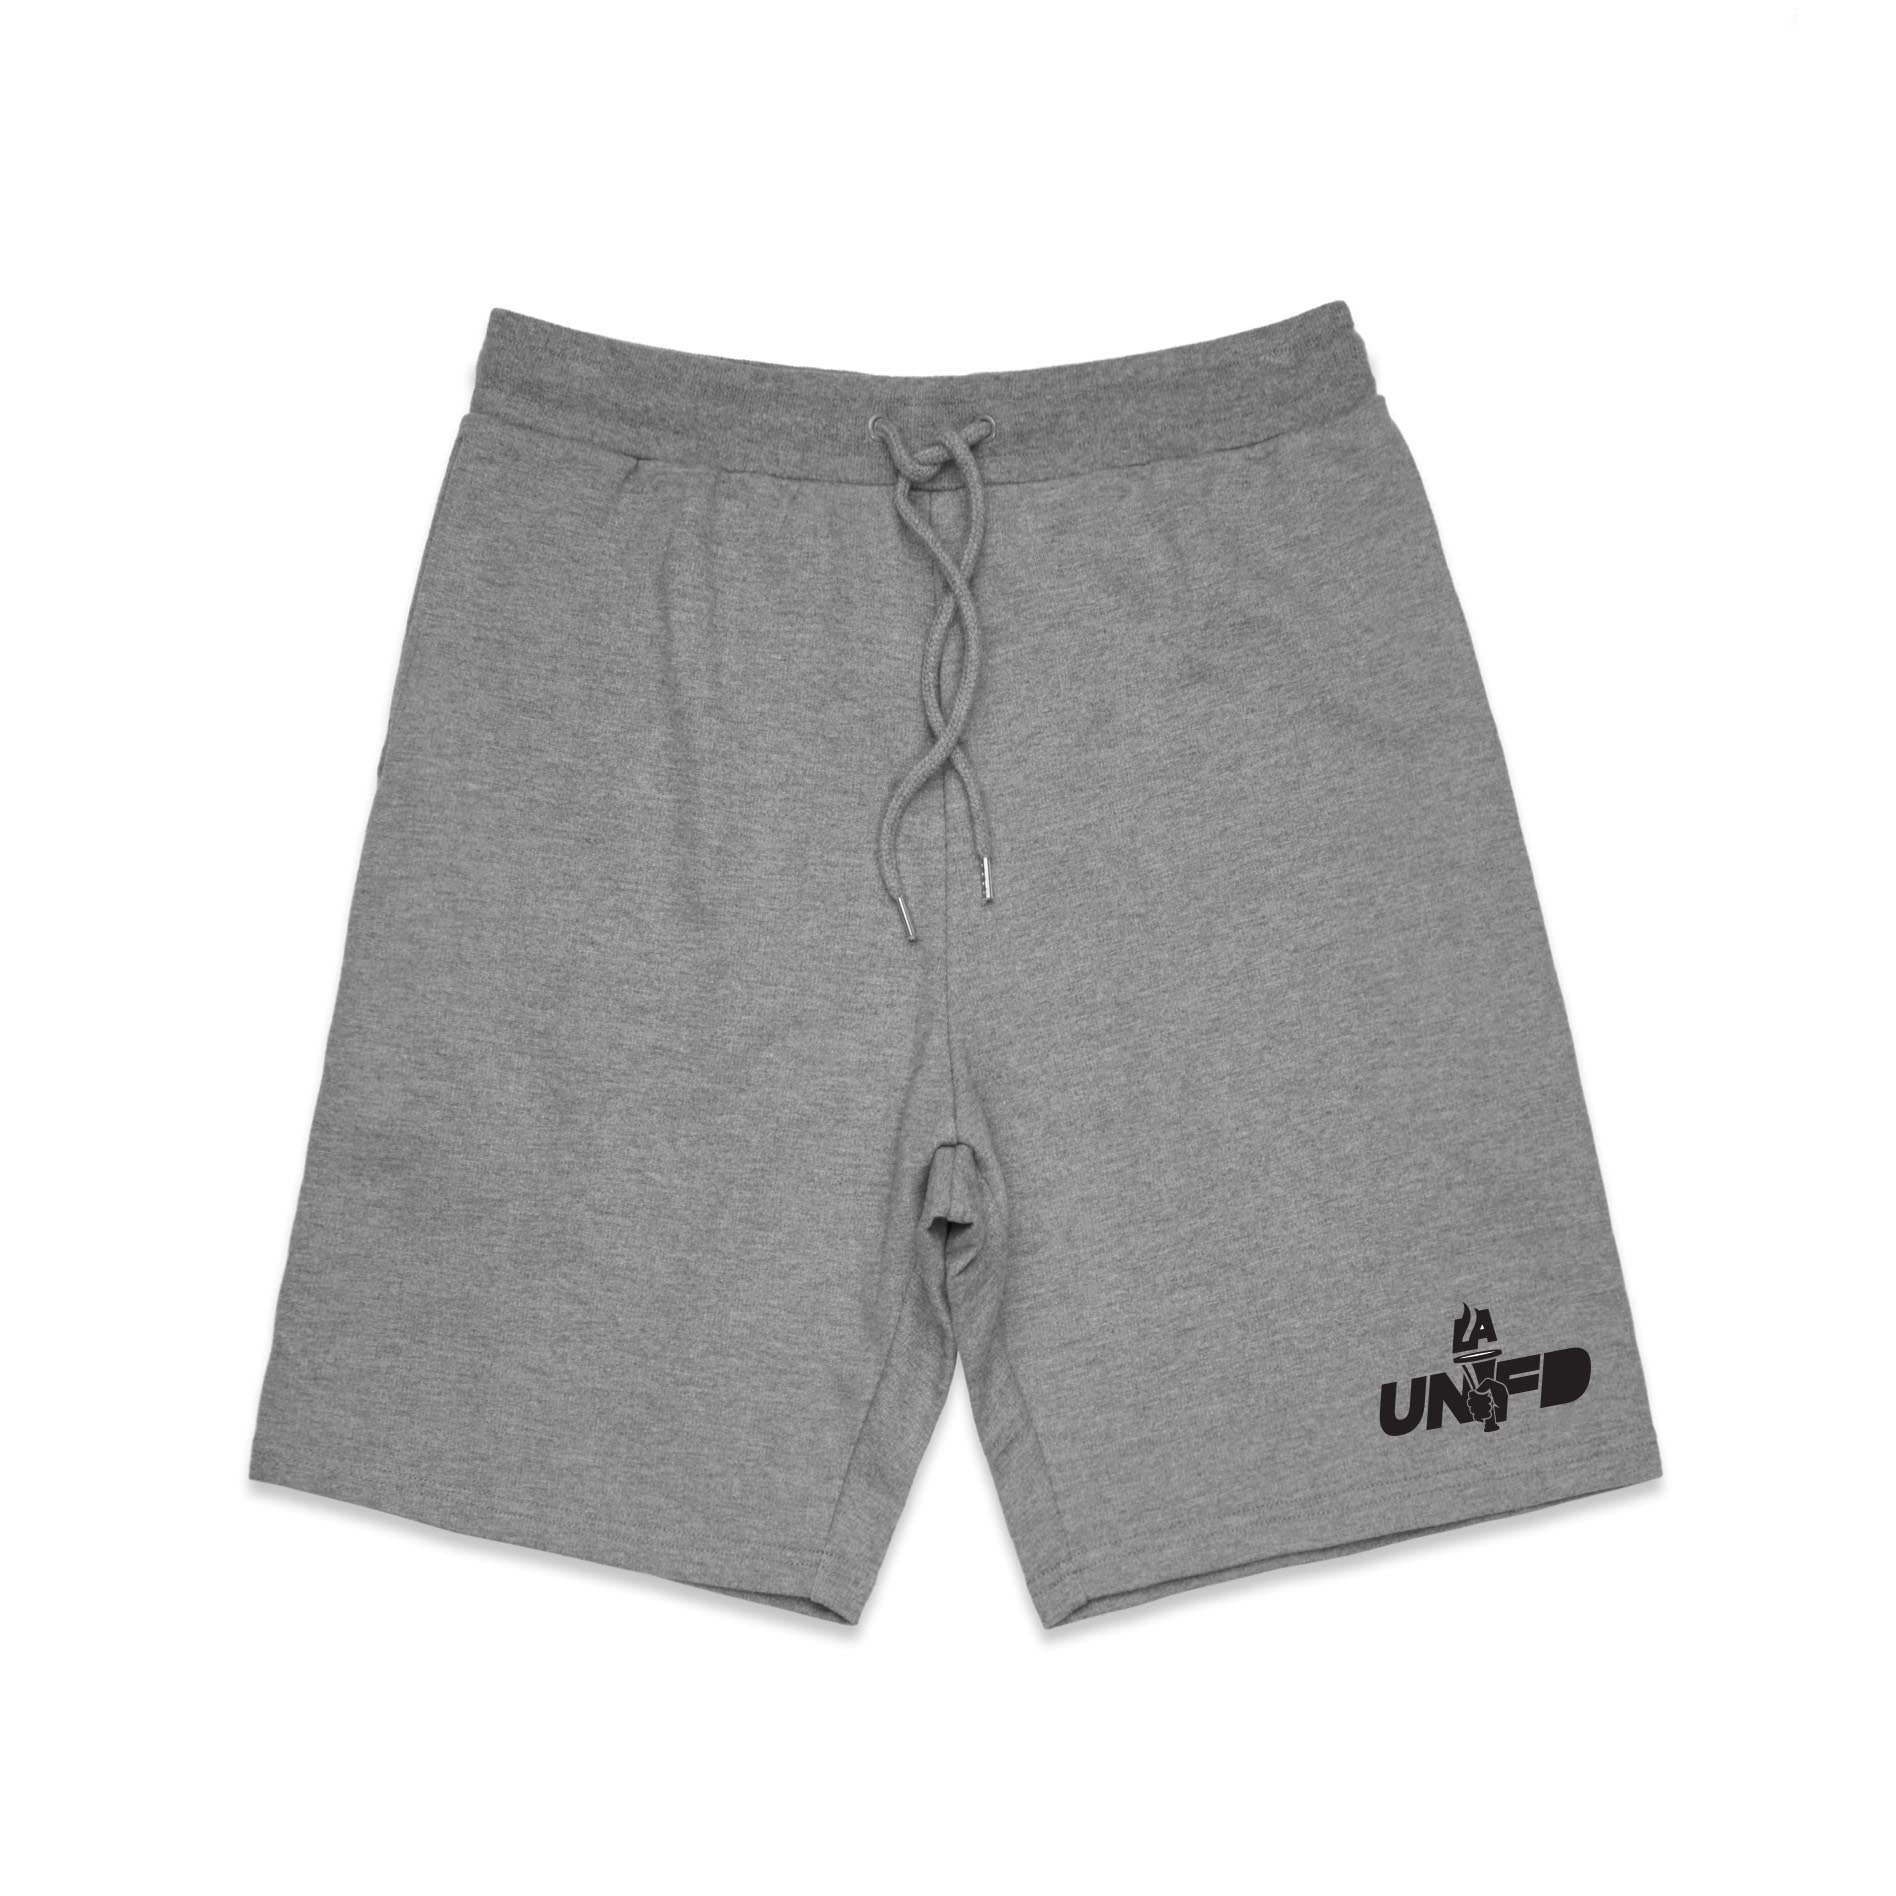 LAUNFD Pass the Torch Athletic Shorts (One Color Logo)